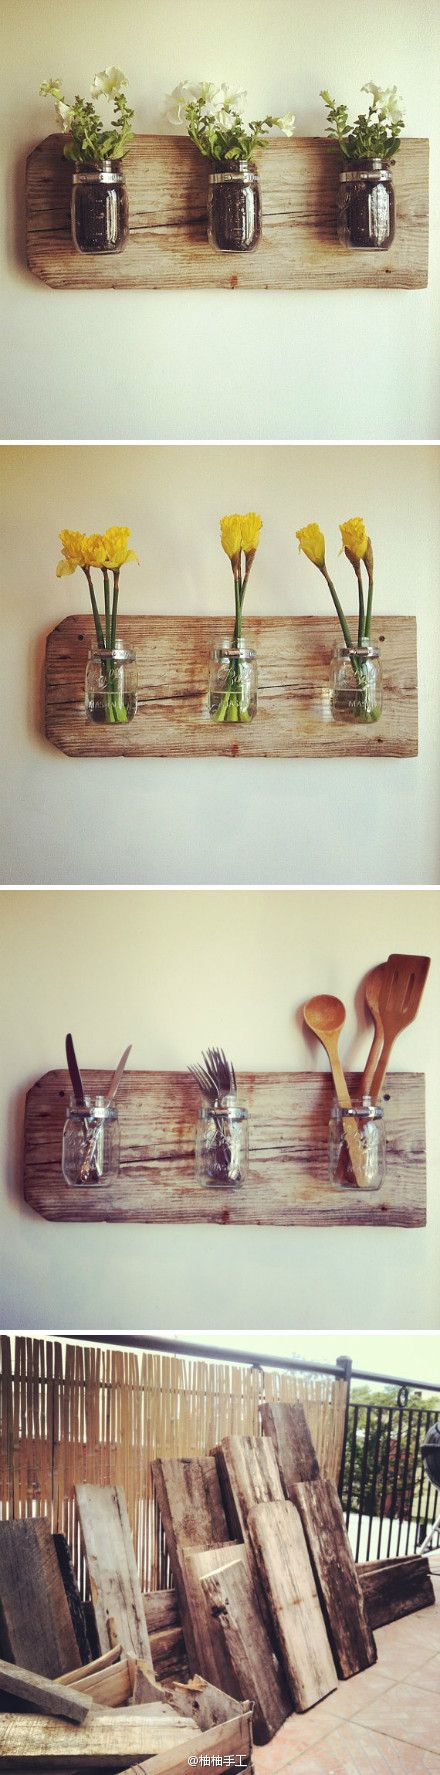 Salvaged wood with mason jar vases/containers.